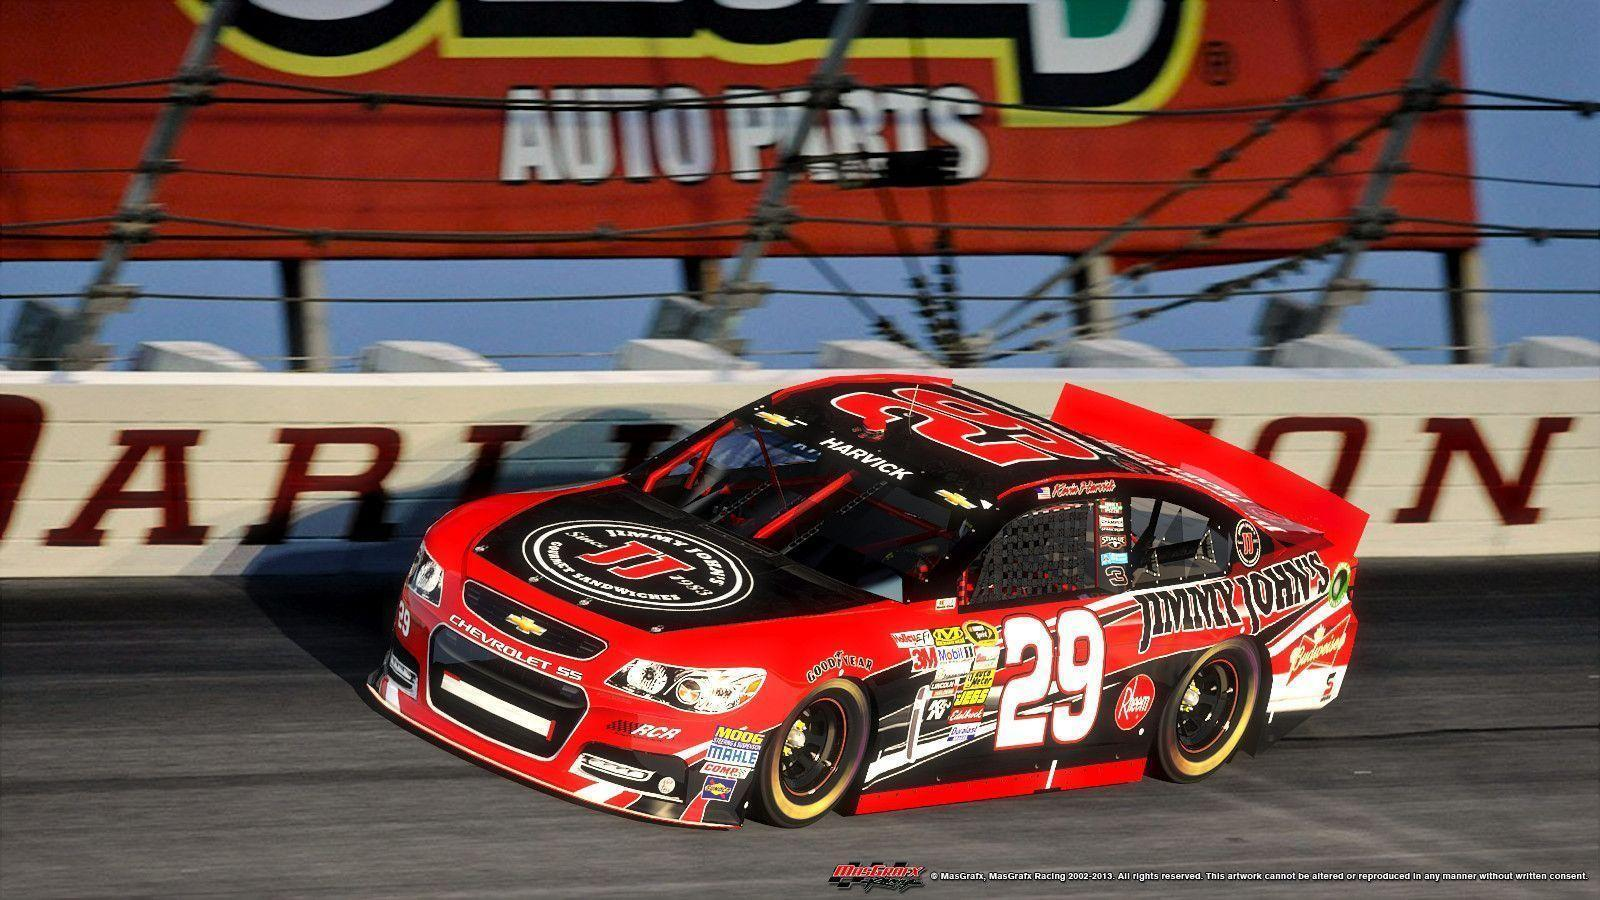 Kevin Harvick Wallpaper Number 4: Kevin Harvick Wallpapers